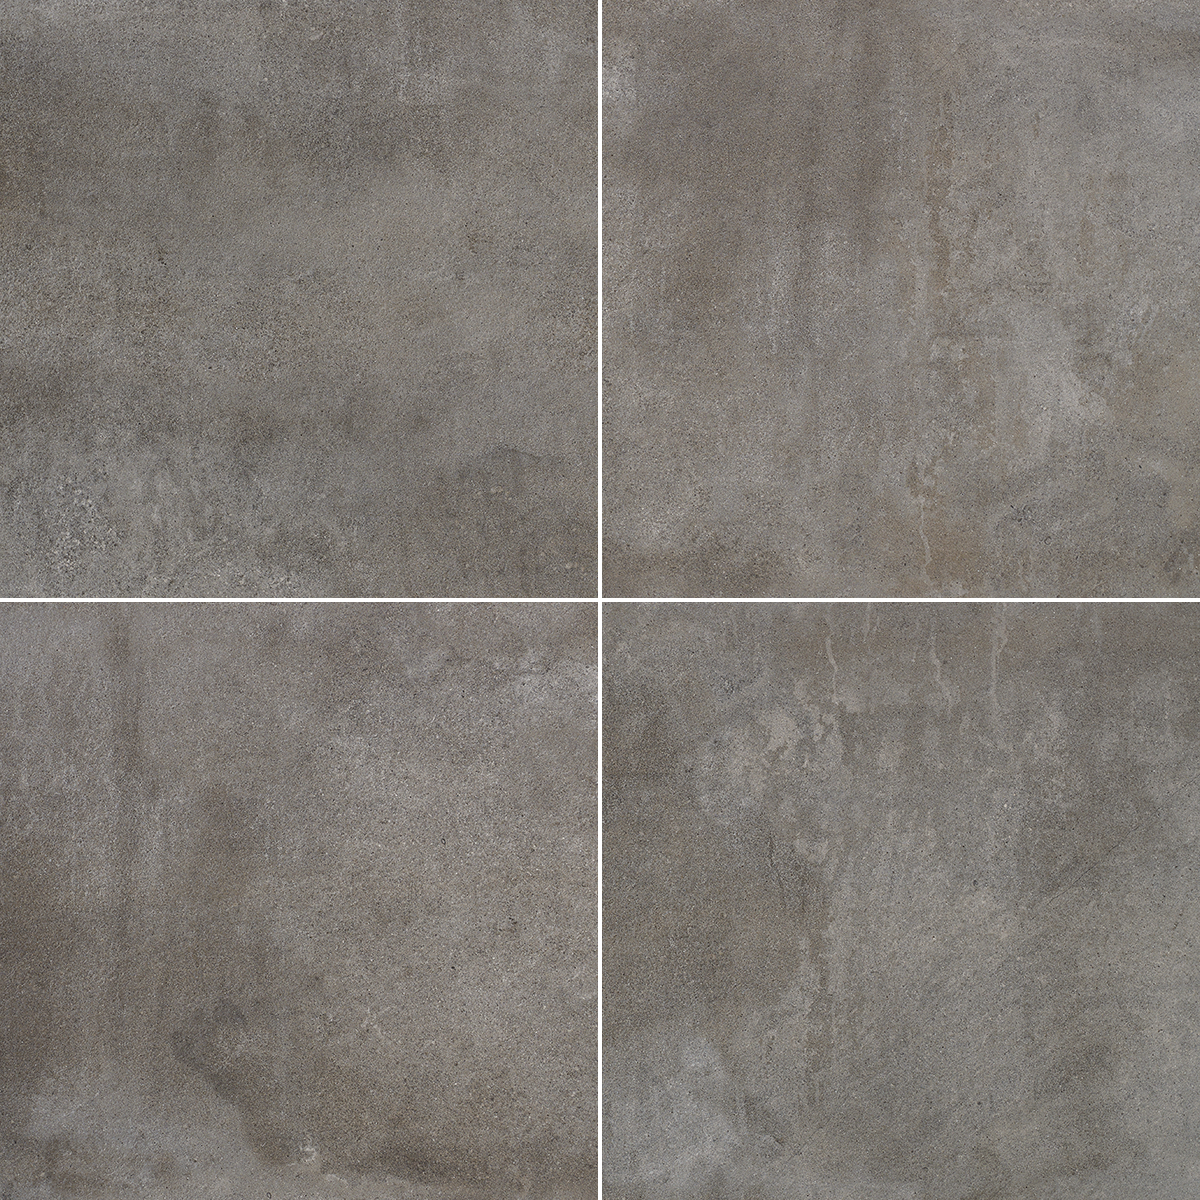 Ales Grey, Lappato, 600x600x10 mm